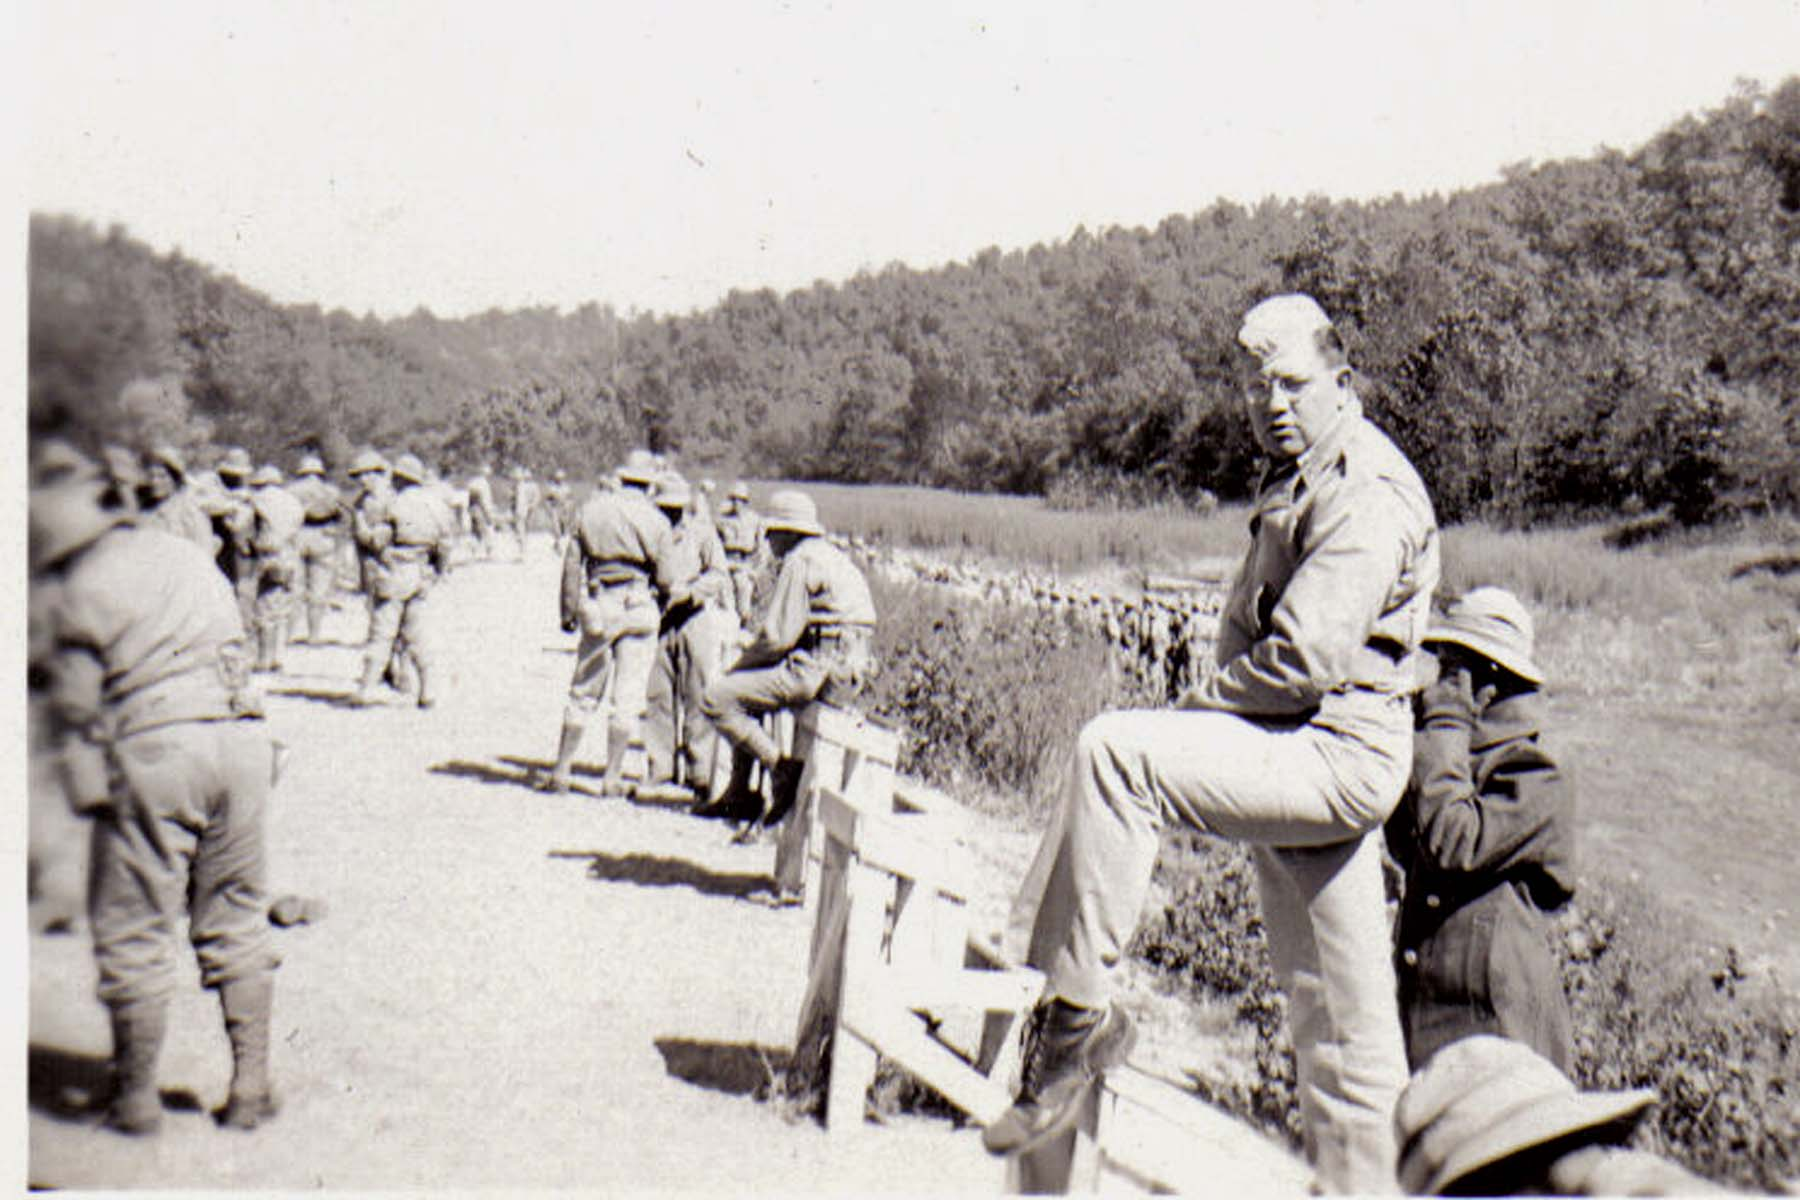 A23 Ft_ Leonard Wood_ MO - Captain Jack Lyman the battalion CO on the firing line